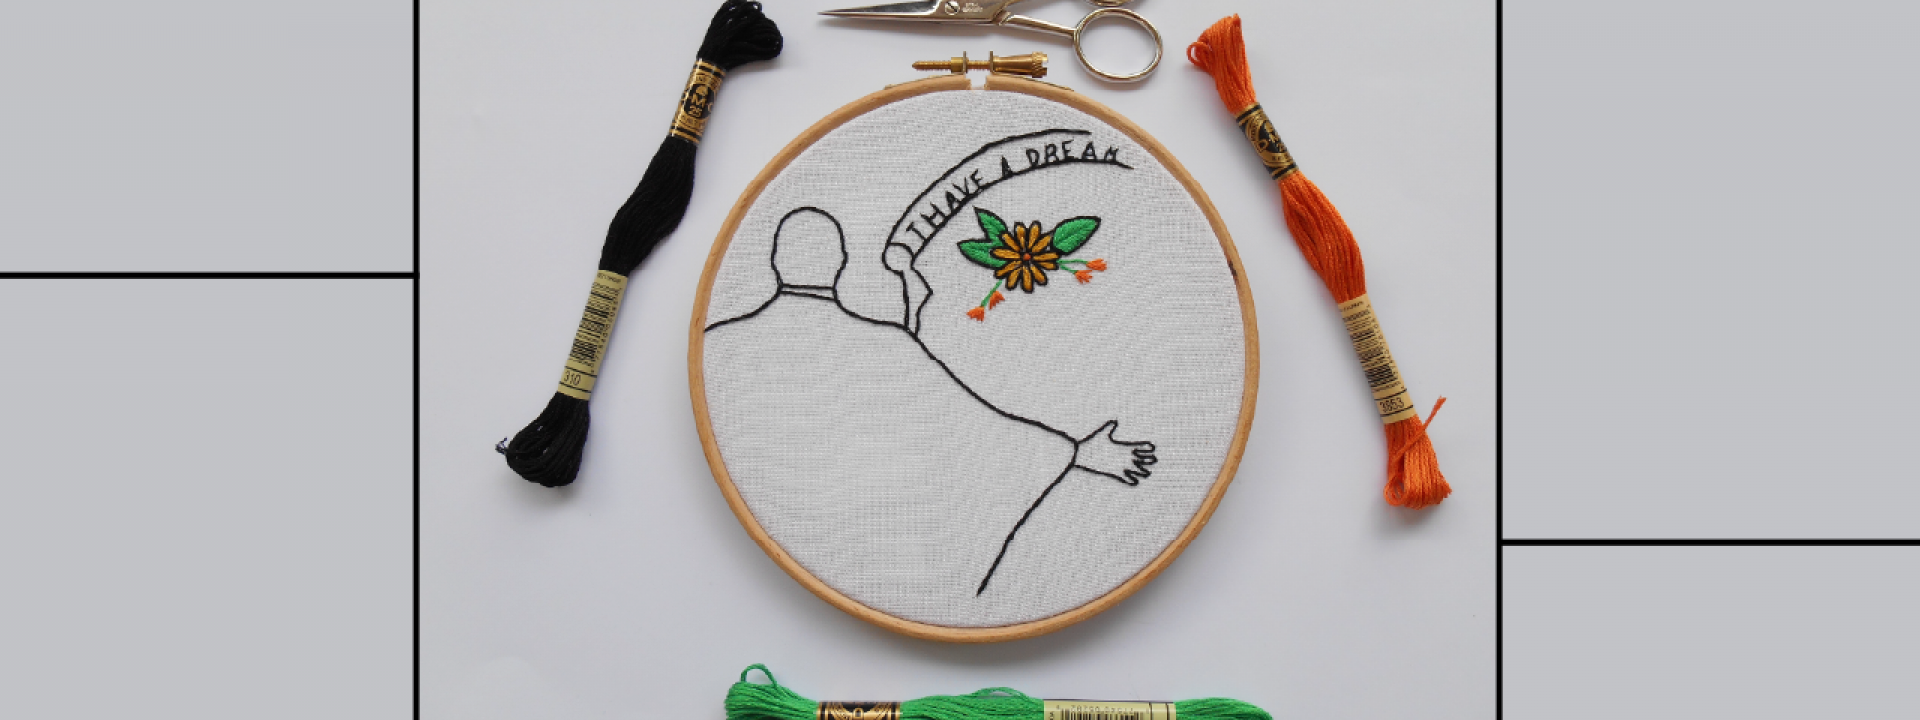 Members Events: Creative Embroidery | Eminent personalities - Εικόνα